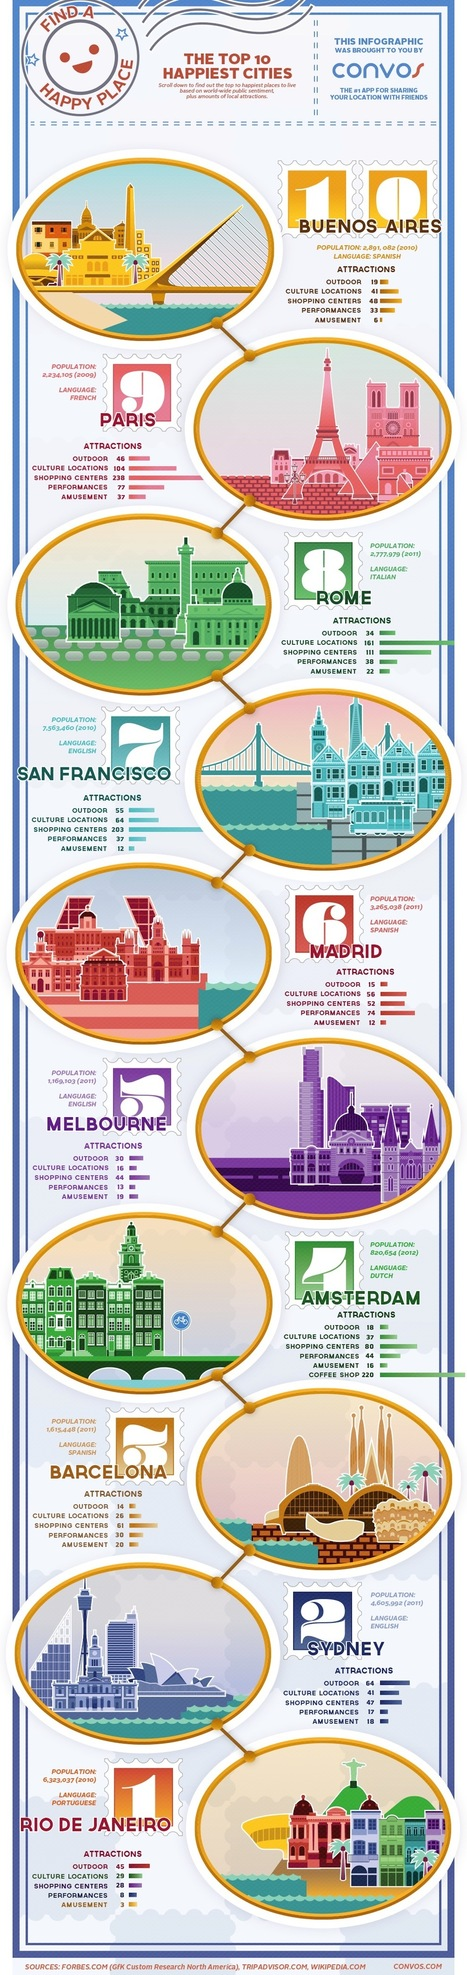 The Happiest Cities in the World [Infographic] | bancoideas | Scoop.it